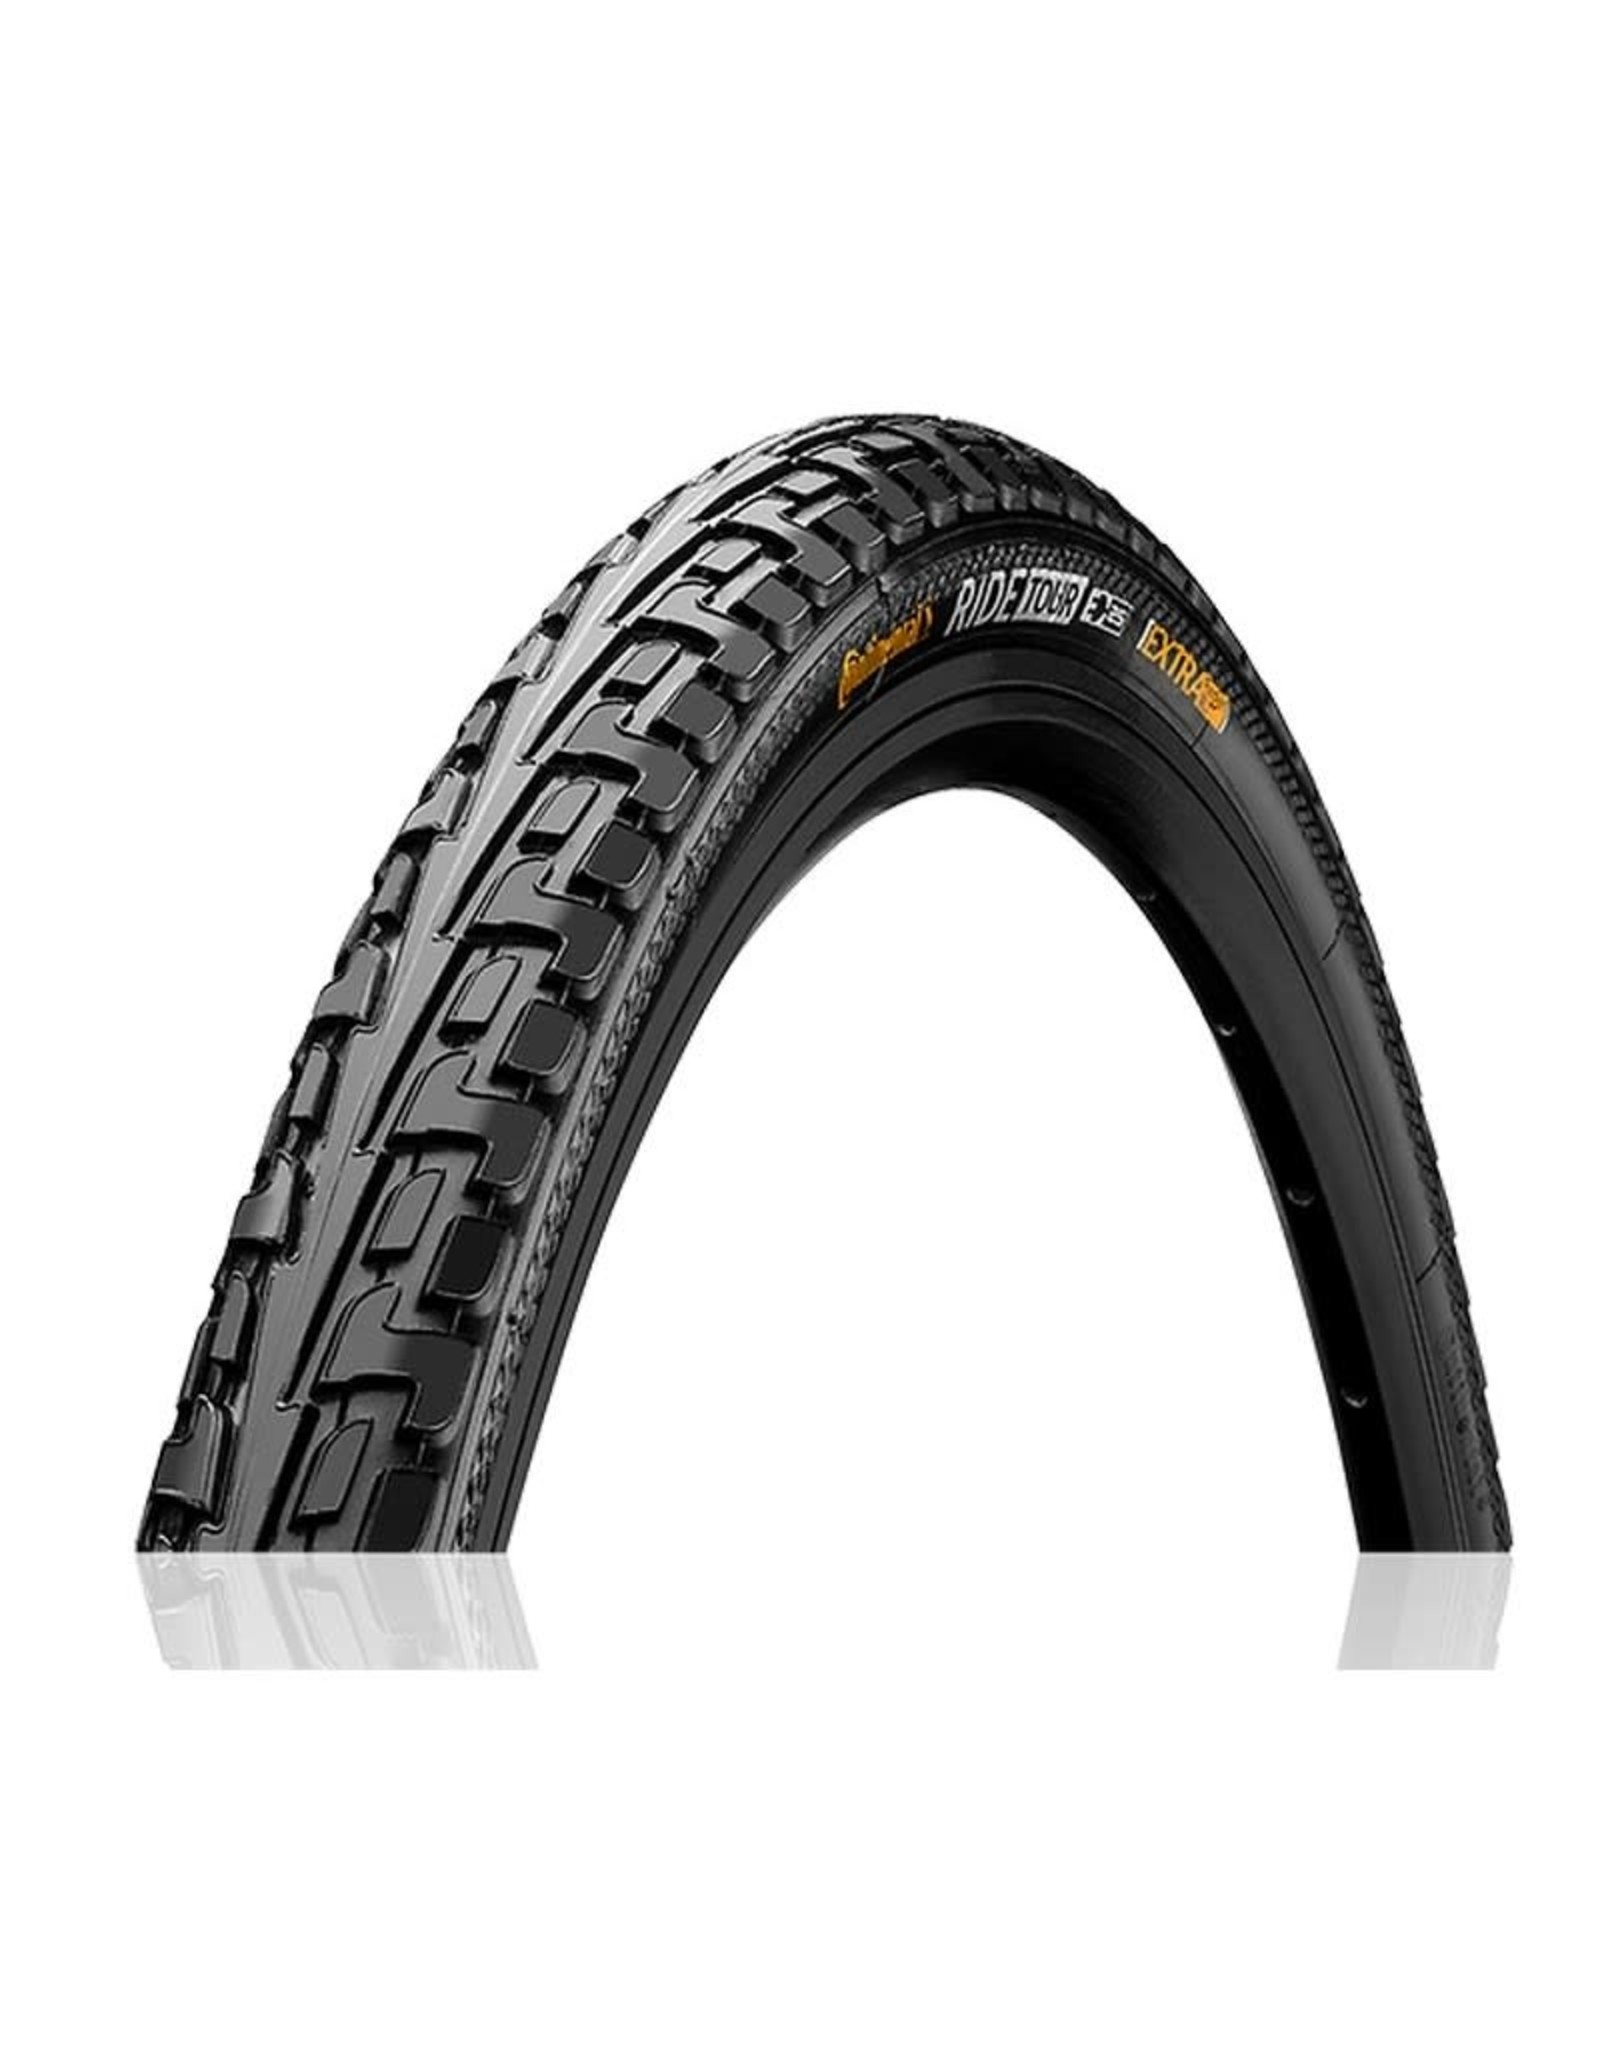 Black Continental 700x32 Road Bicycle Home Trainer Bike Tire